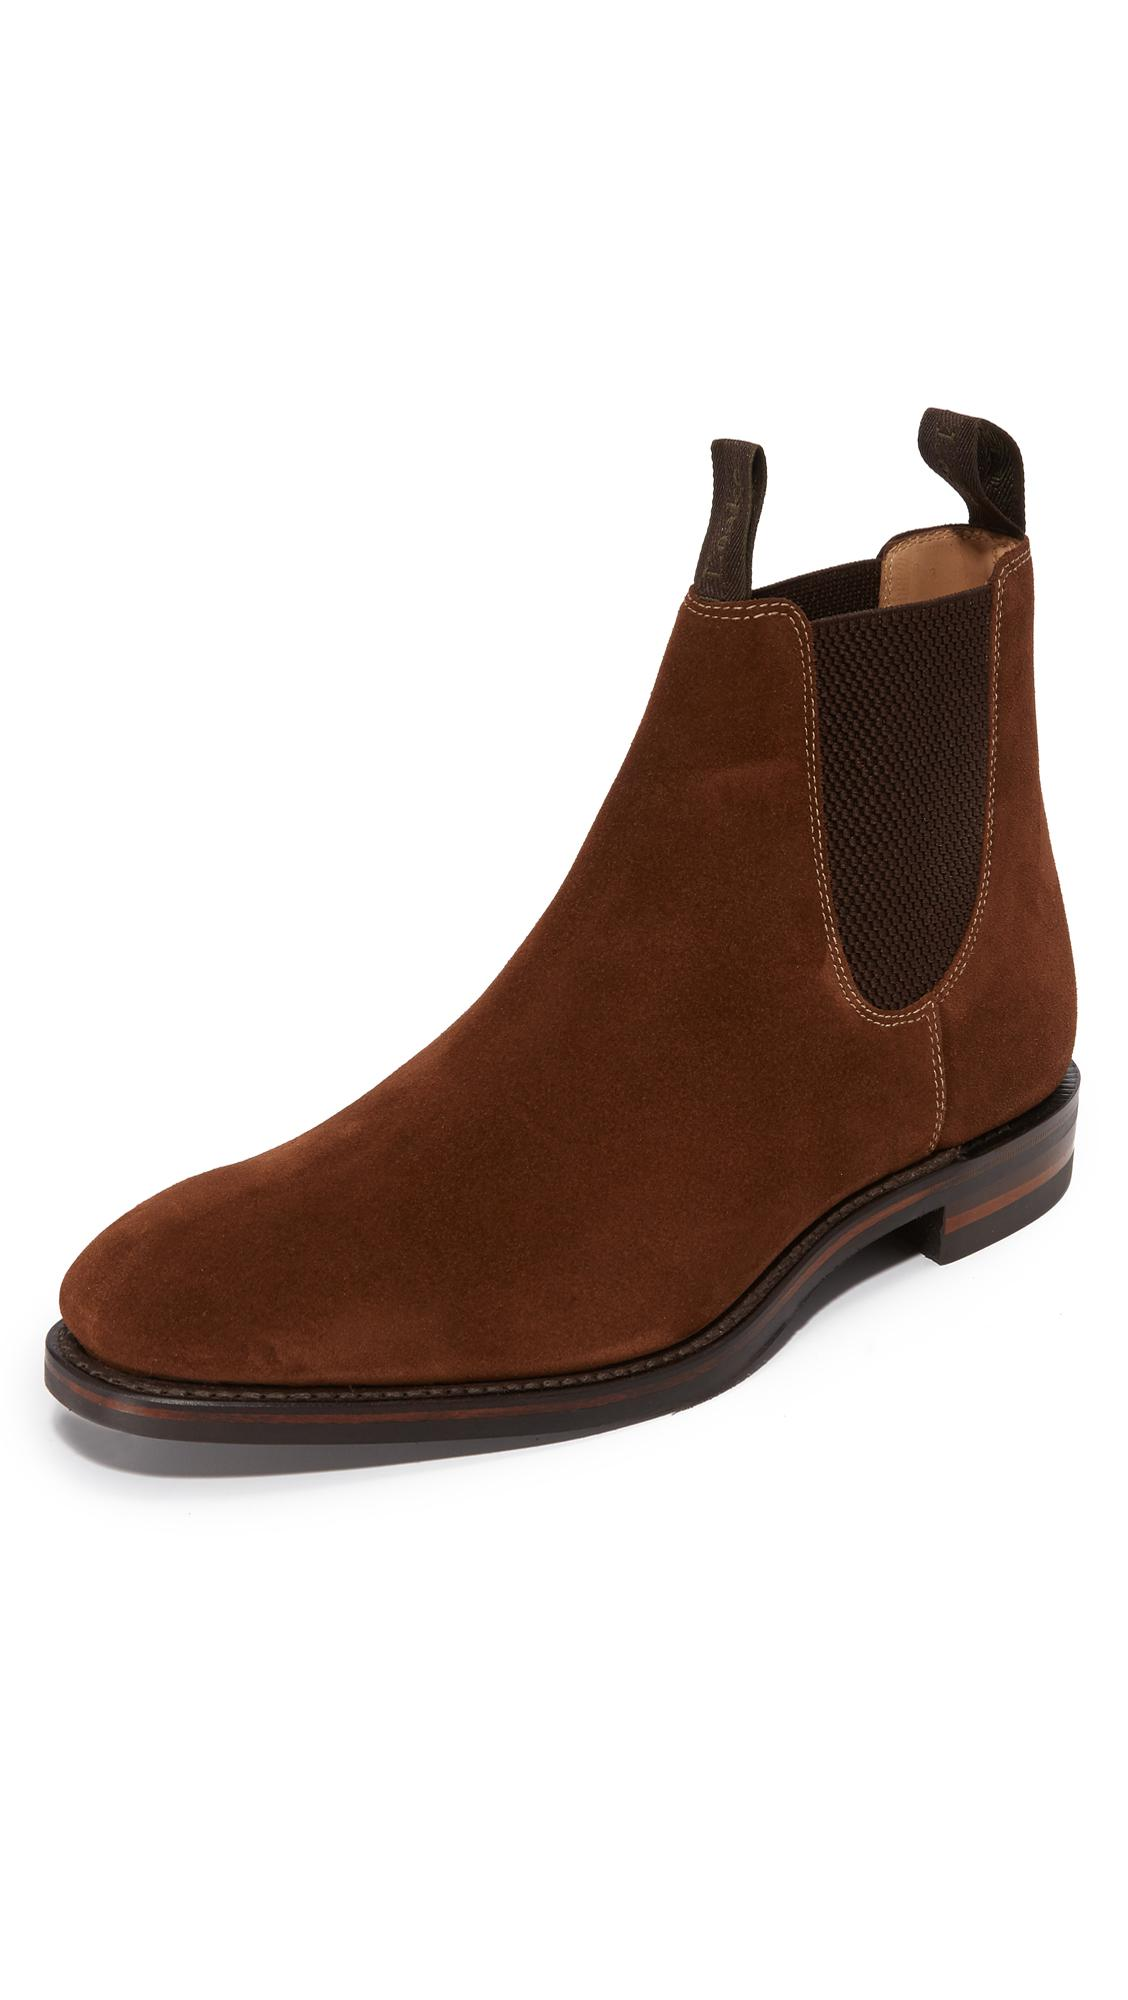 4079bbf16f5e9 Gallery. Previously sold at: East Dane · Men's Chelsea Boots